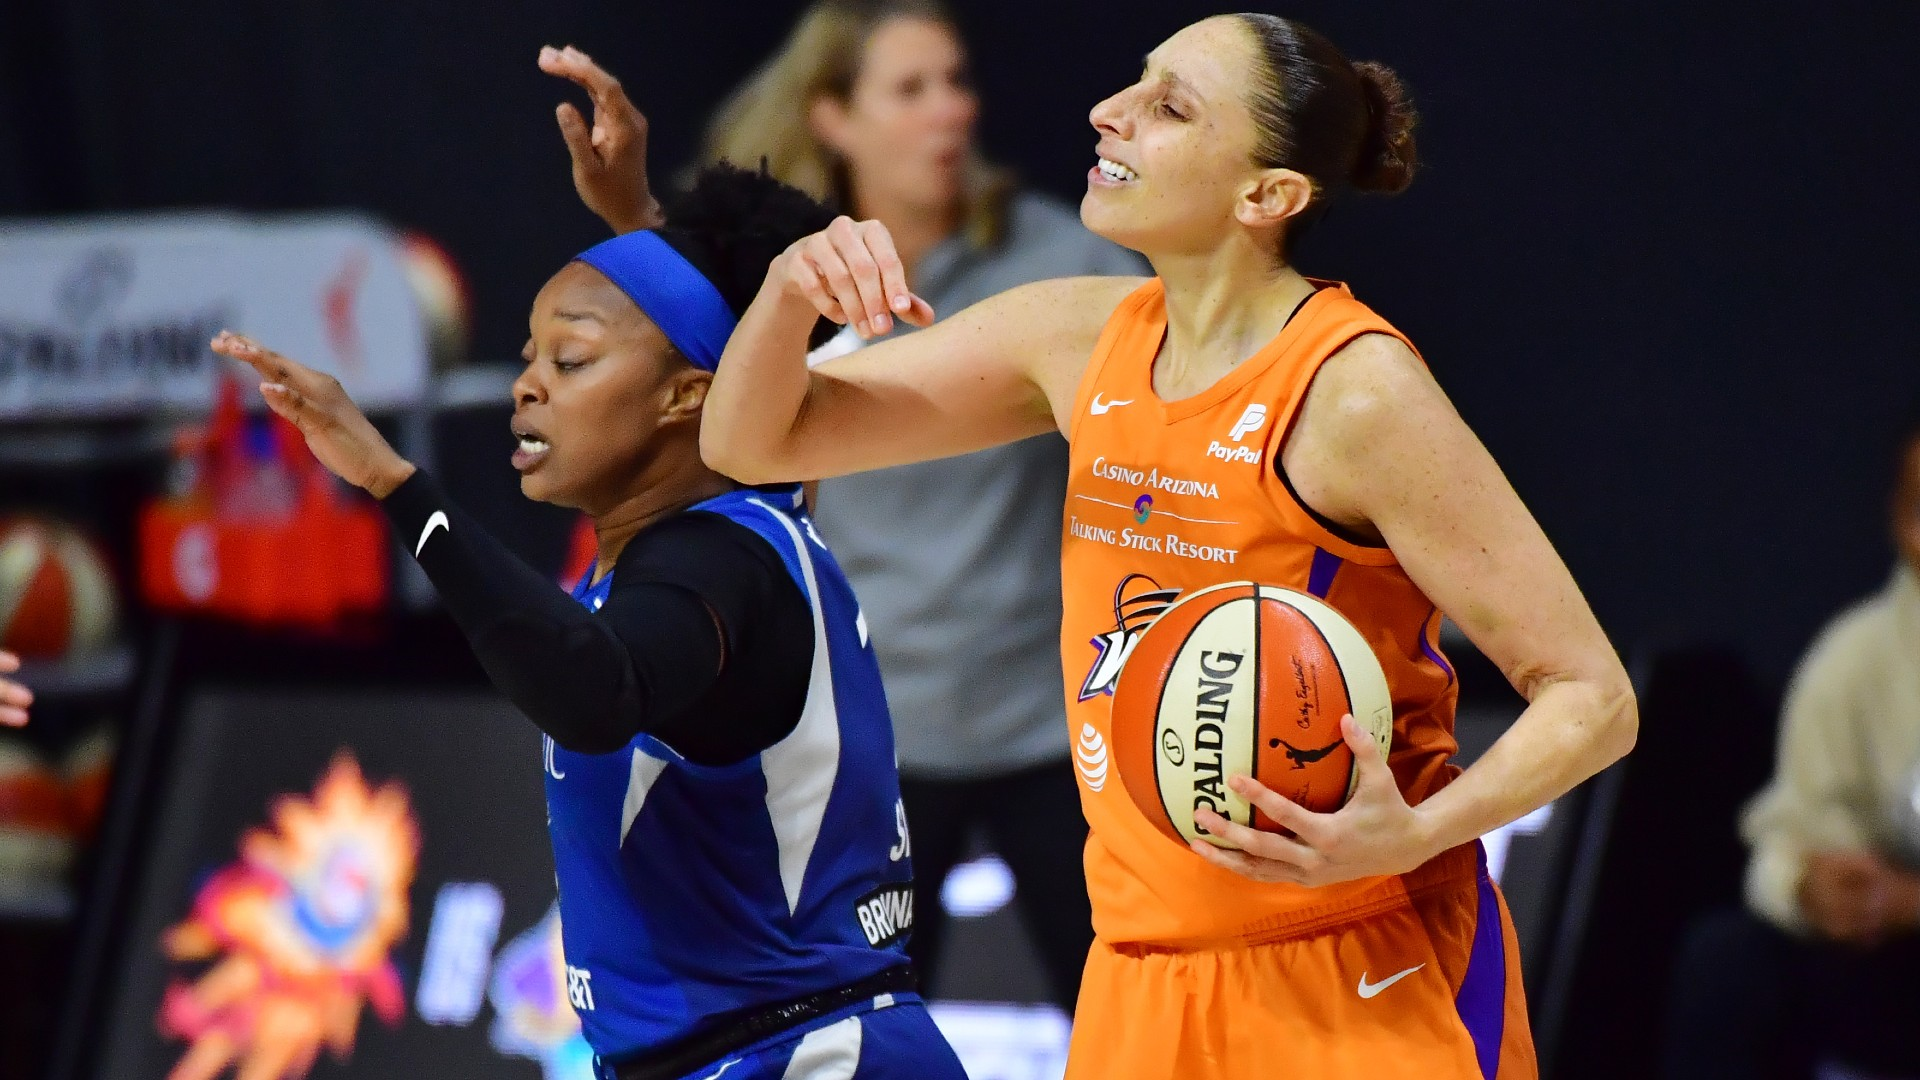 Mercury's Diana Taurasi Drains 3 Wins To Open 17th WNBA Season